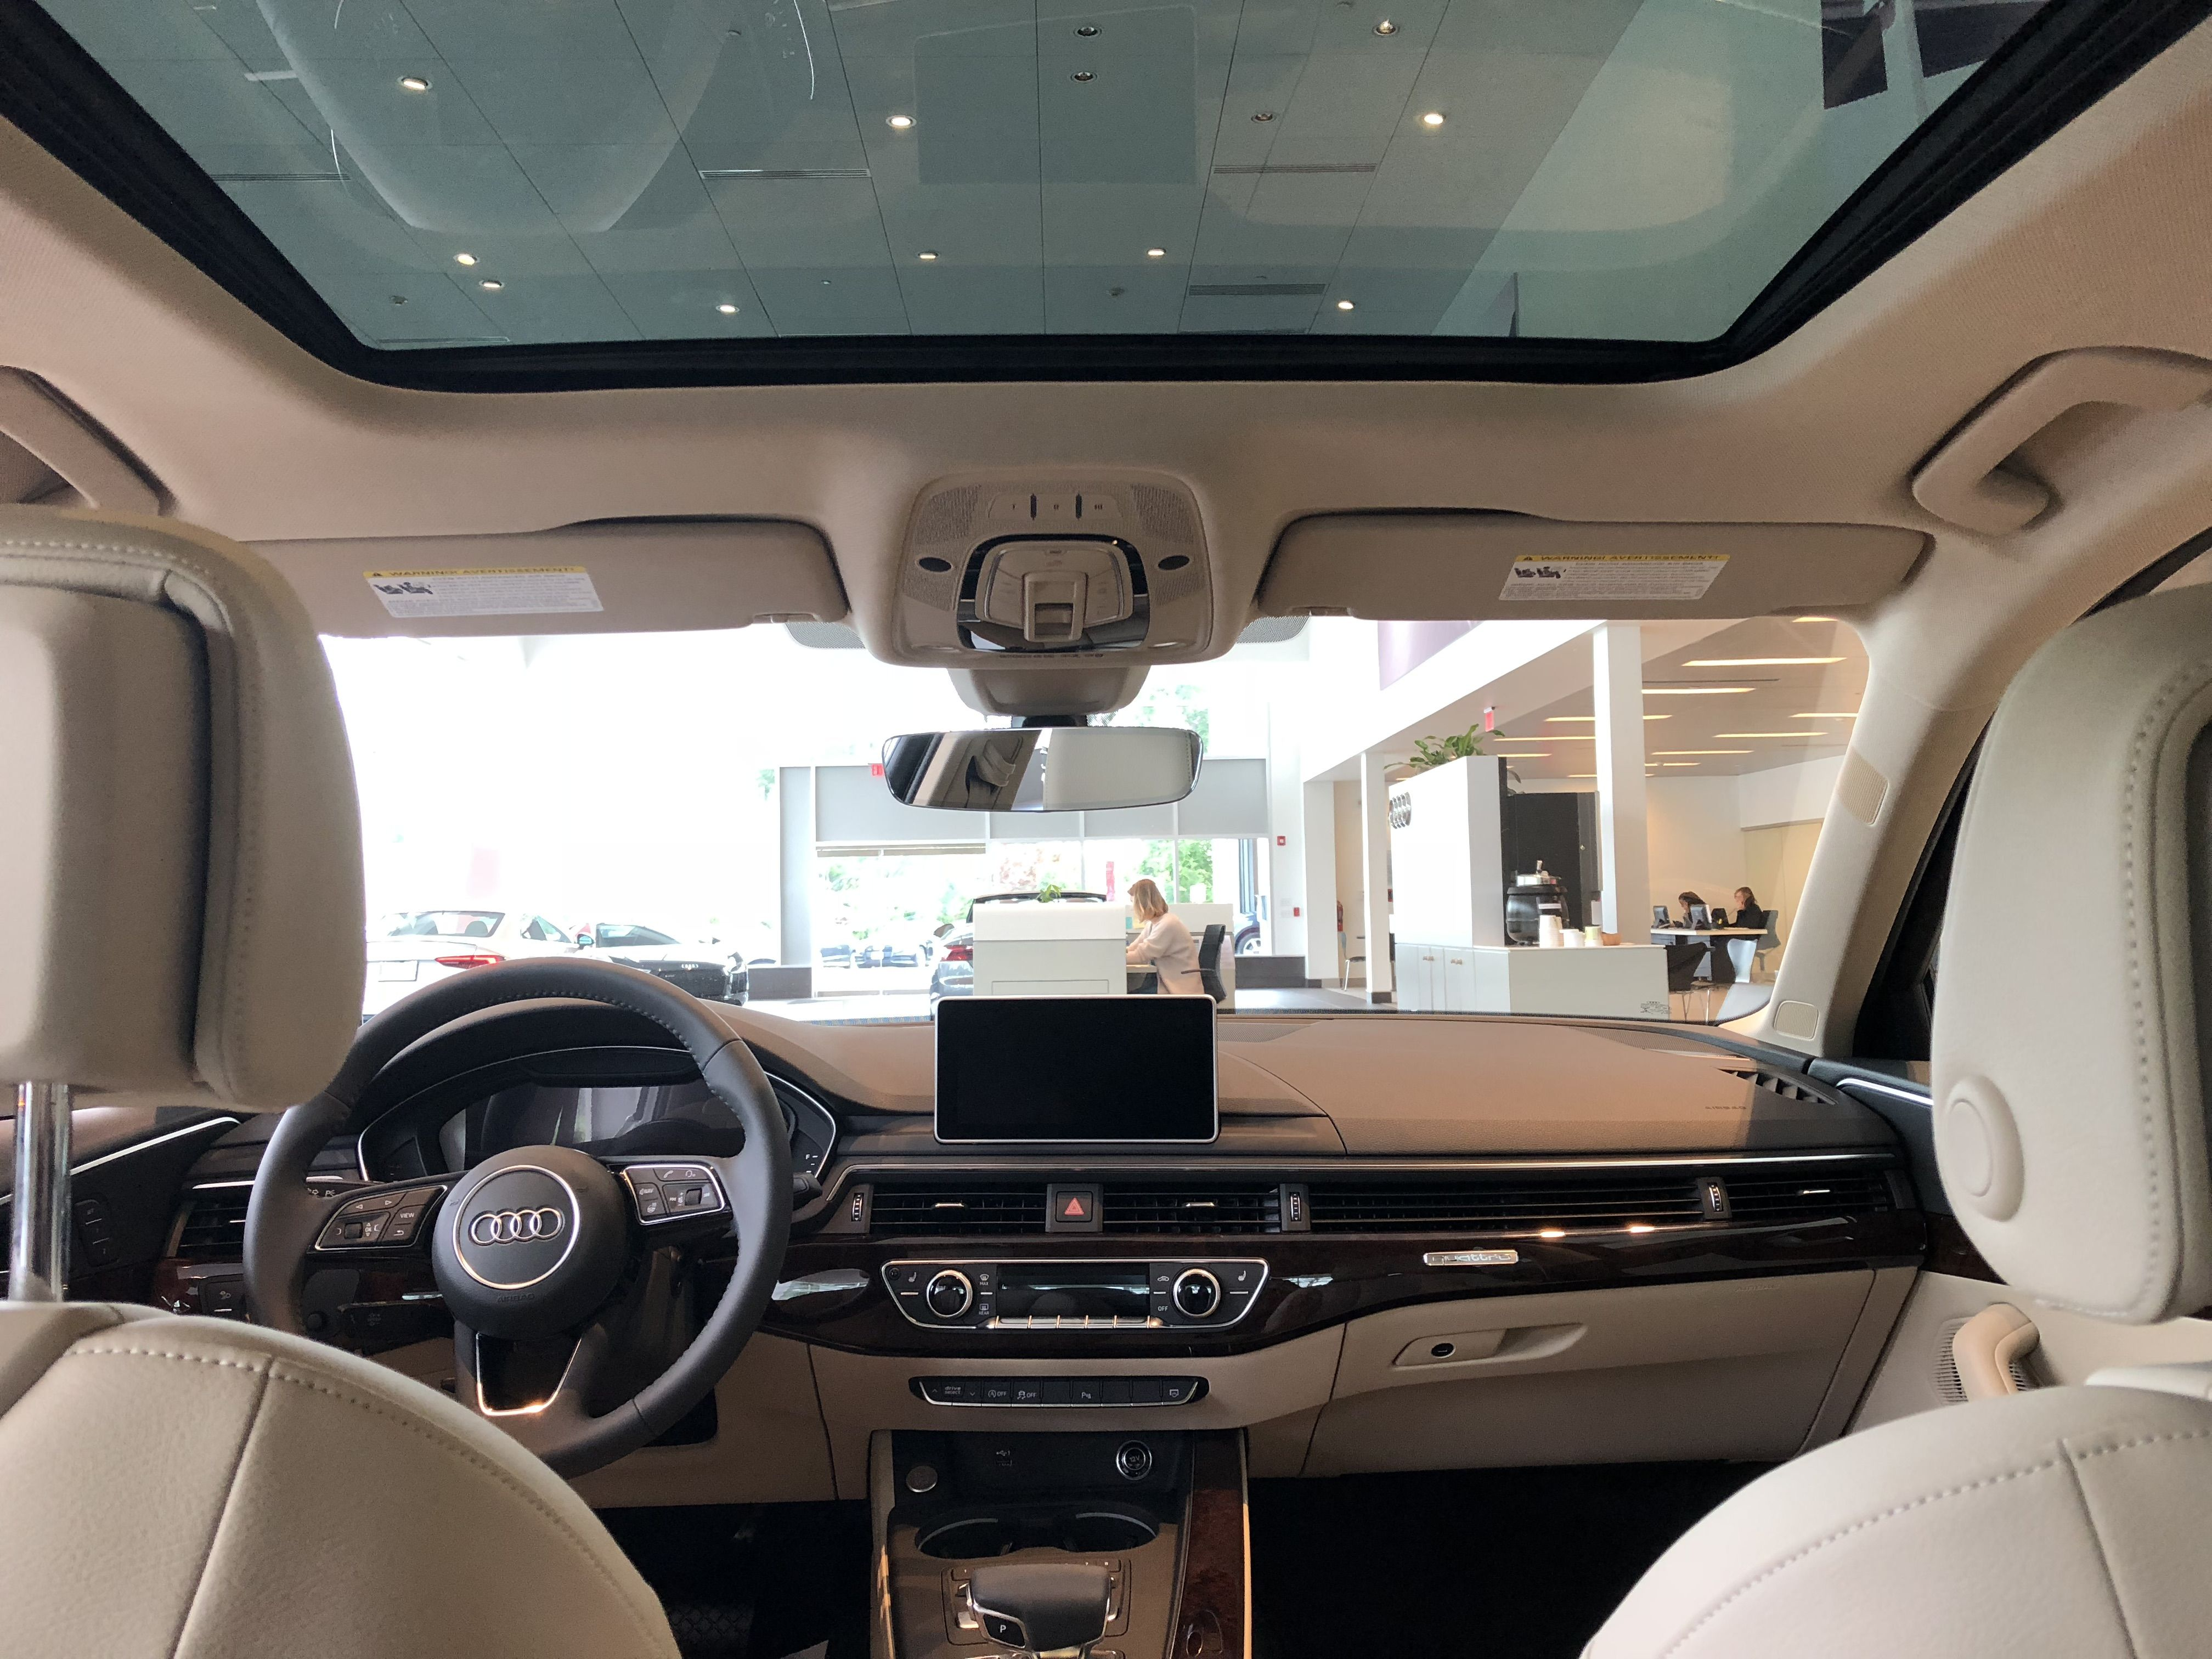 Rear Seat View With Moon Roof Of The 2018 Audi A4 With Tan Interior Located At Audi Of Bridgewater Nj Audi Interior Audi A4 Audi